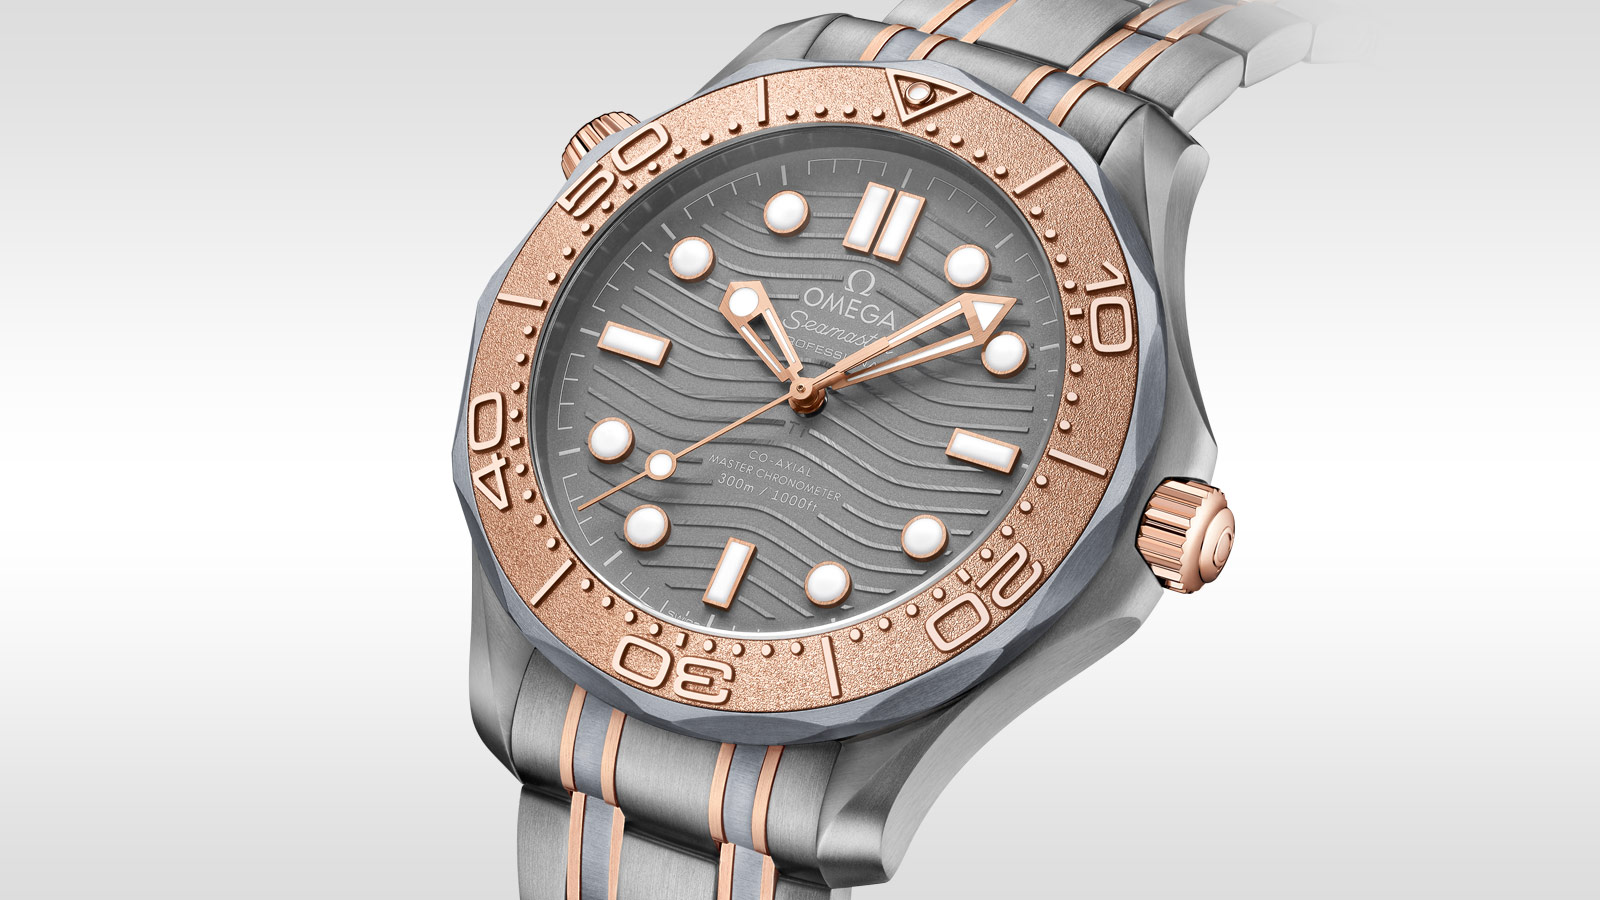 Seamaster Diver 300 M Diver 300M Omega Co‑Axial Master Chronometer 42 mm - 210.60.42.20.99.001 - Visualizzare 1